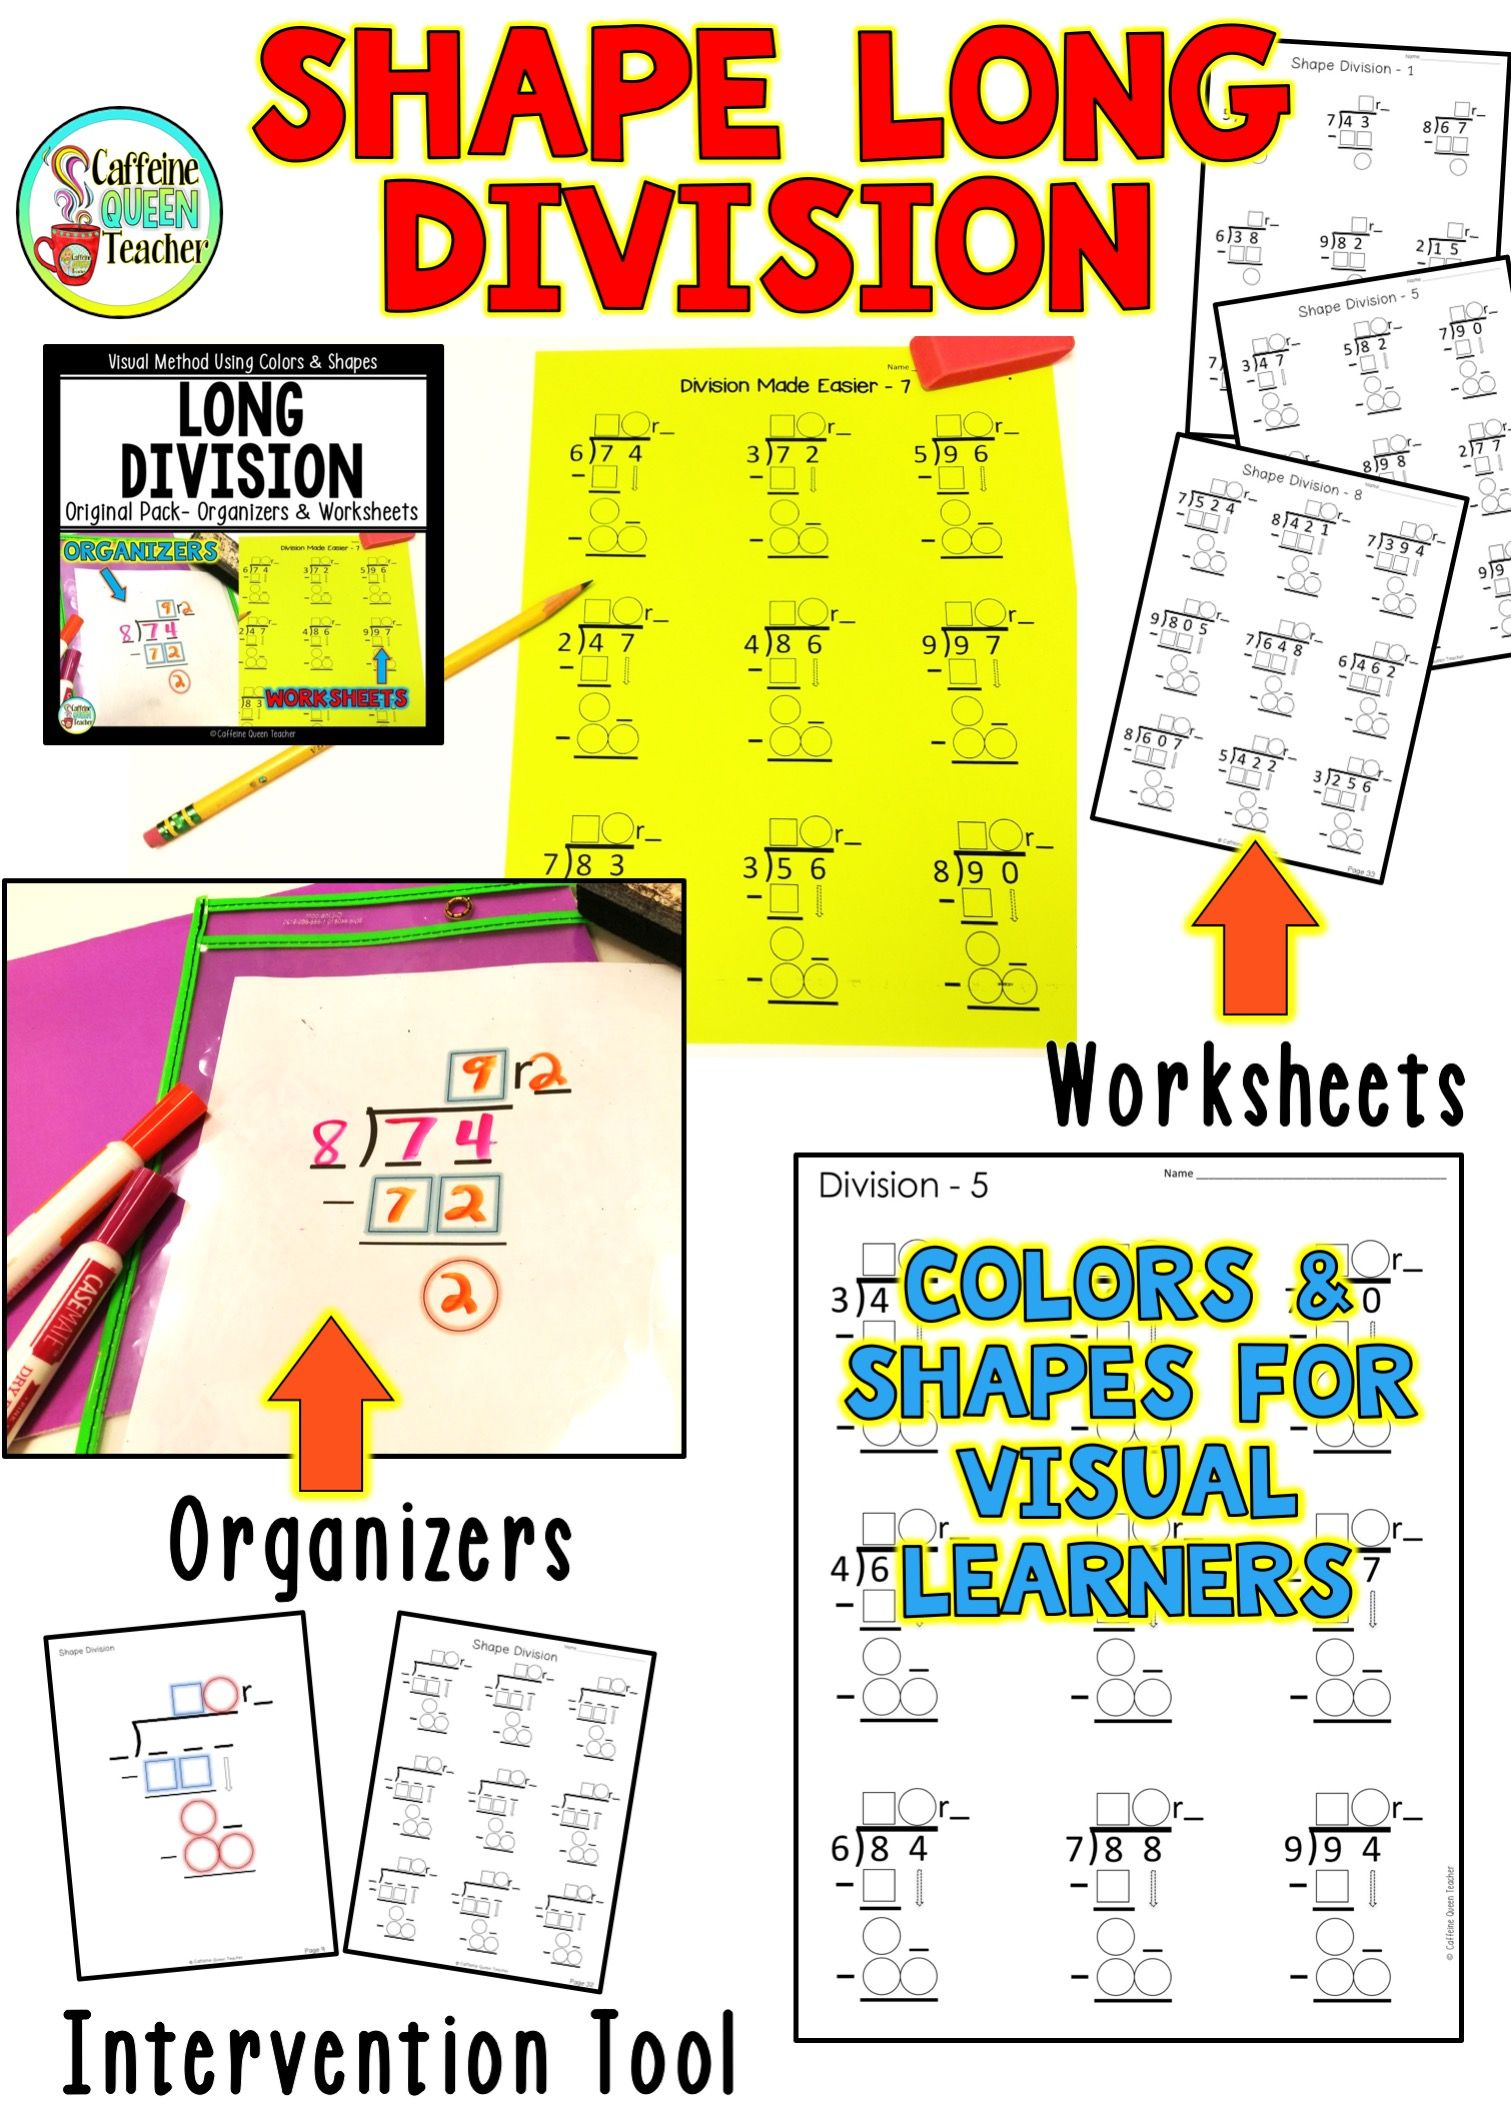 Long Division Worksheets and Organizers | Caffeine Queen ...